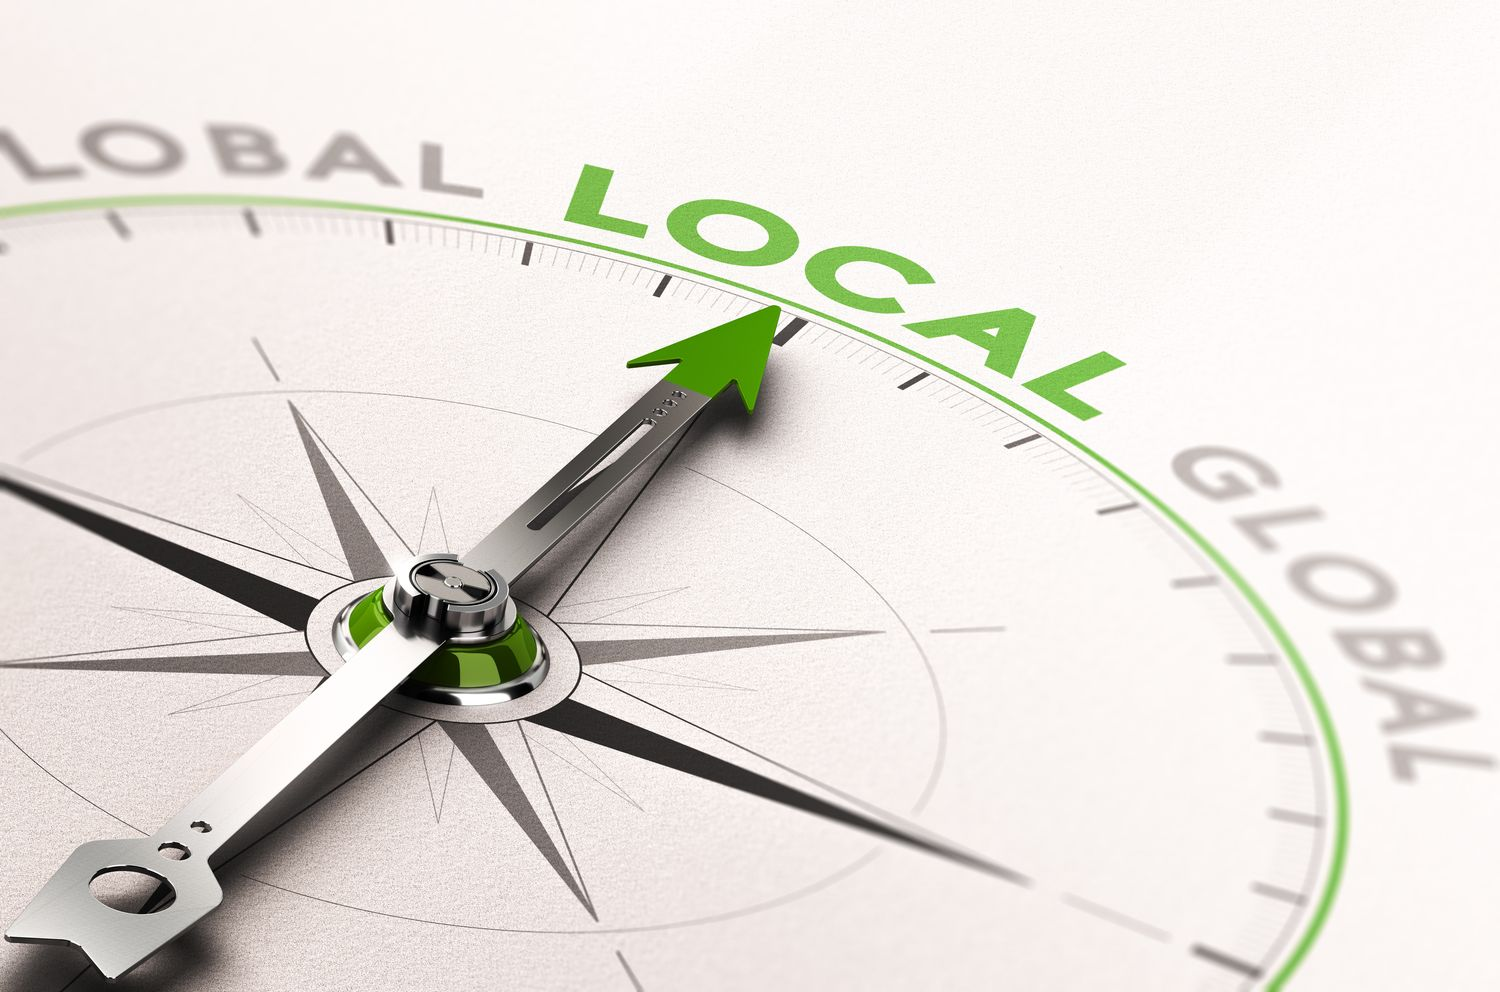 2020 industry report on the State of Local SEO